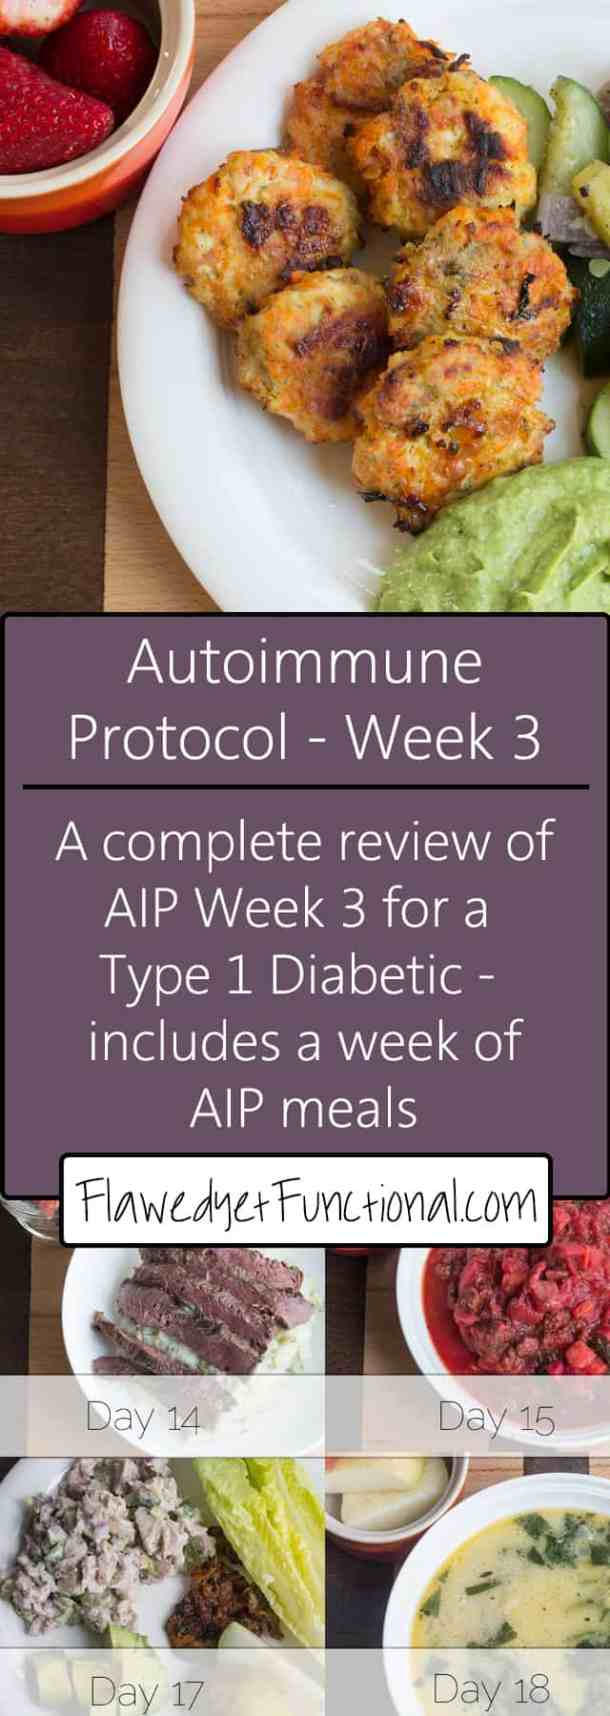 Autoimmune Protocol Week 3 Review